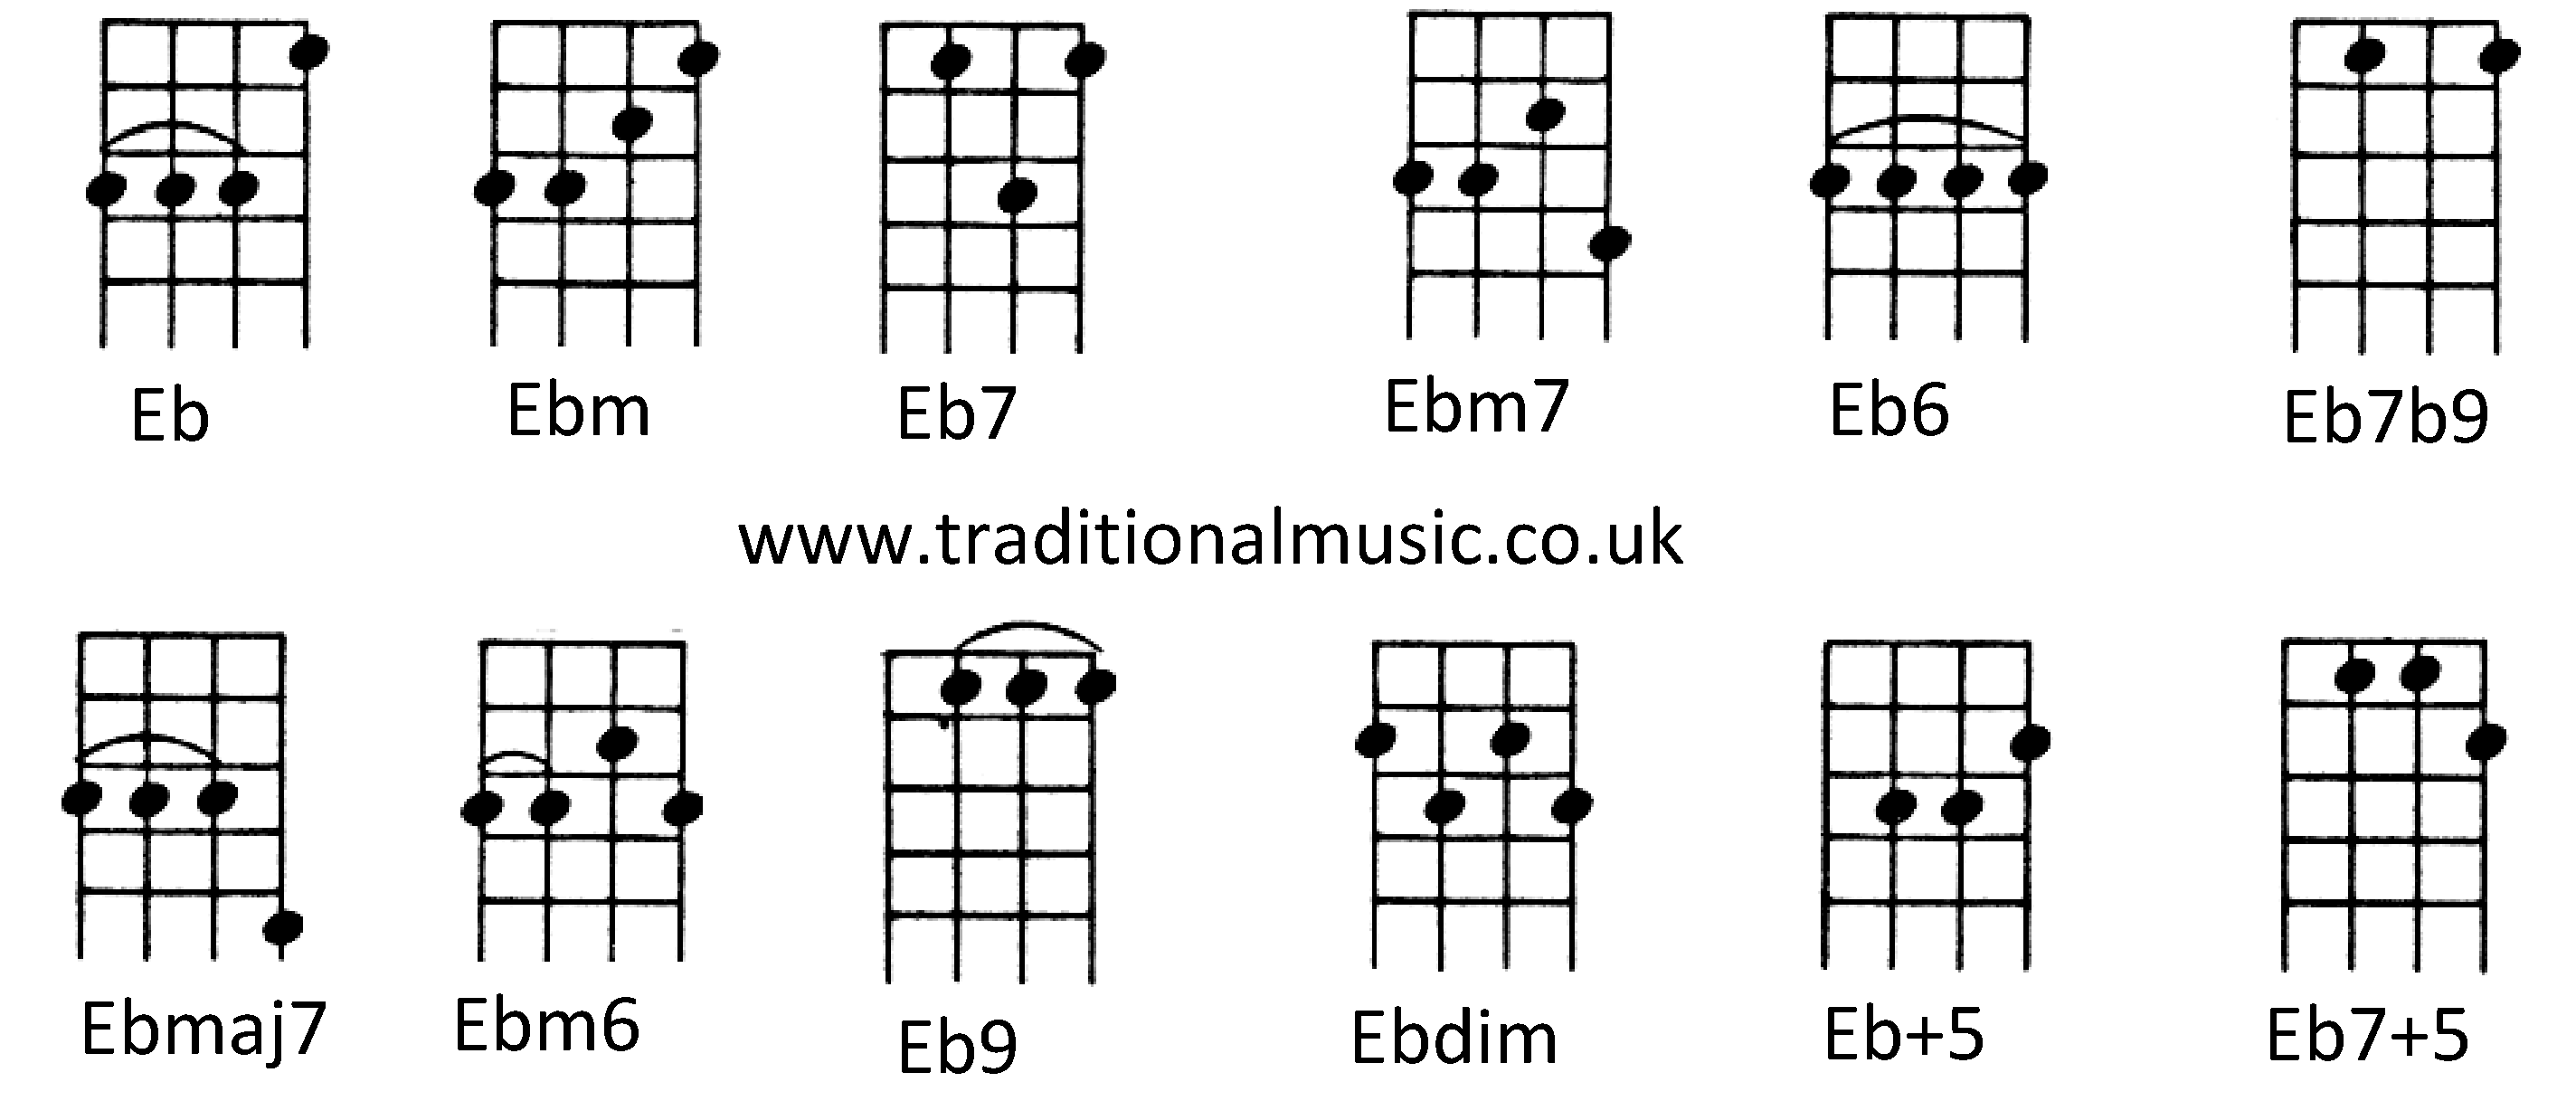 List Of Synonyms And Antonyms Of The Word Ebm Chord